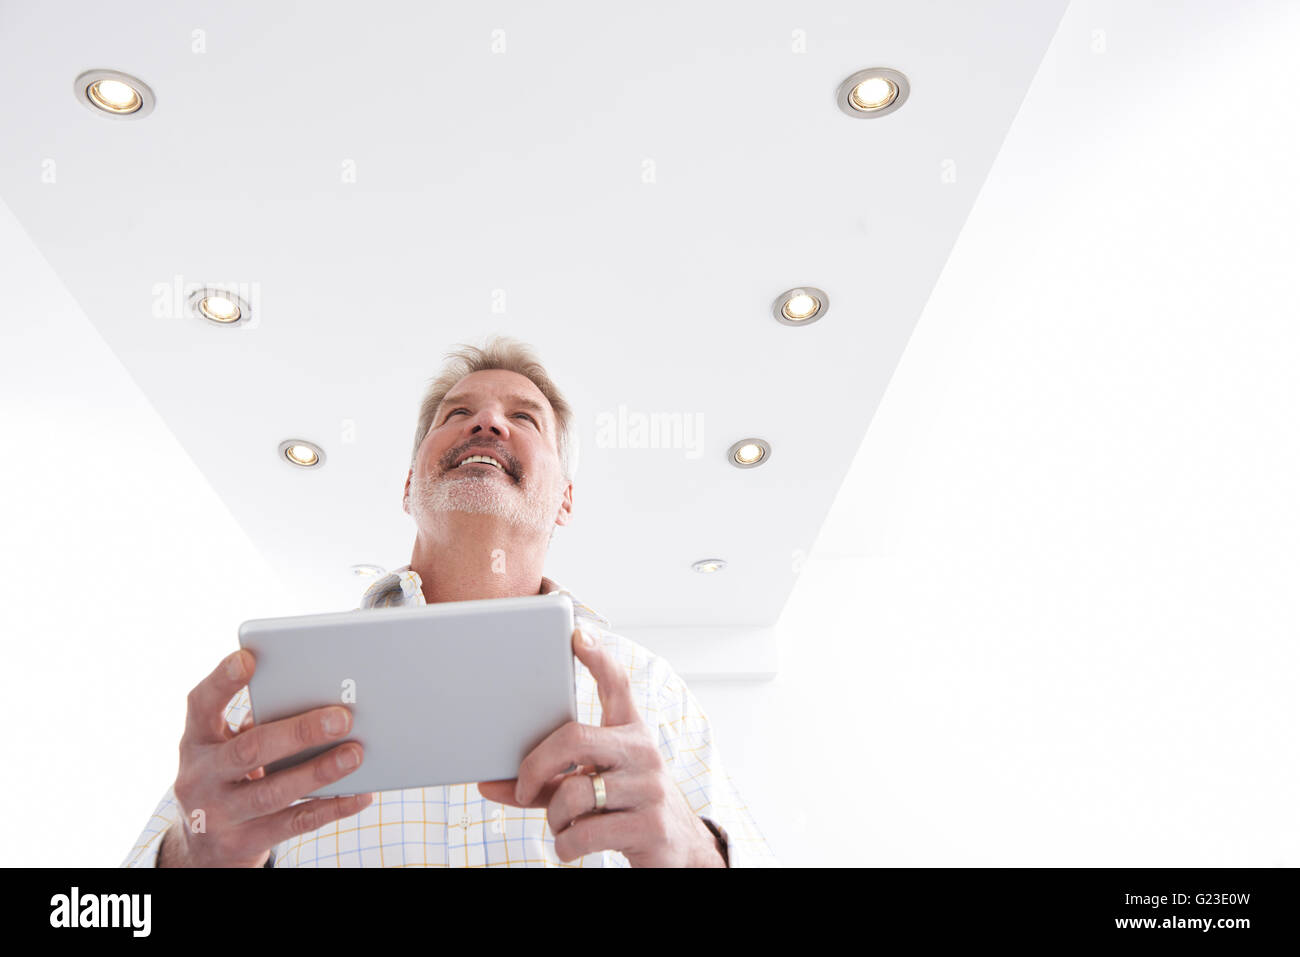 Man Controlling Lighting With App On Digital Tablet - Stock Image